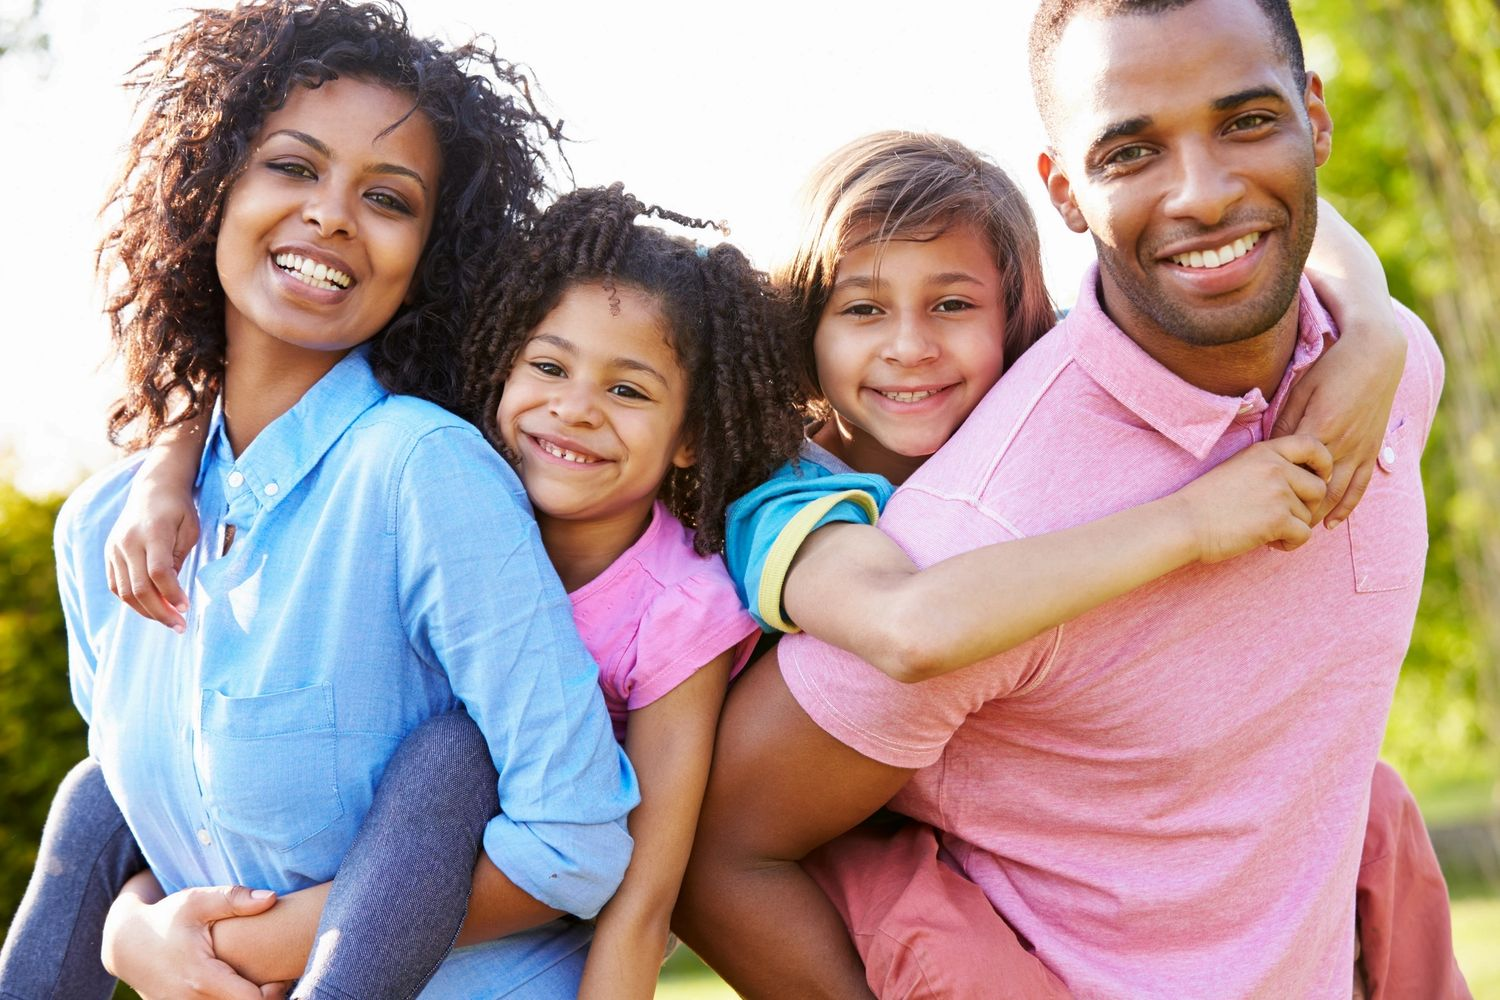 A family of four smiling ready for chiropractic care. Chiropractic care for the entire family.